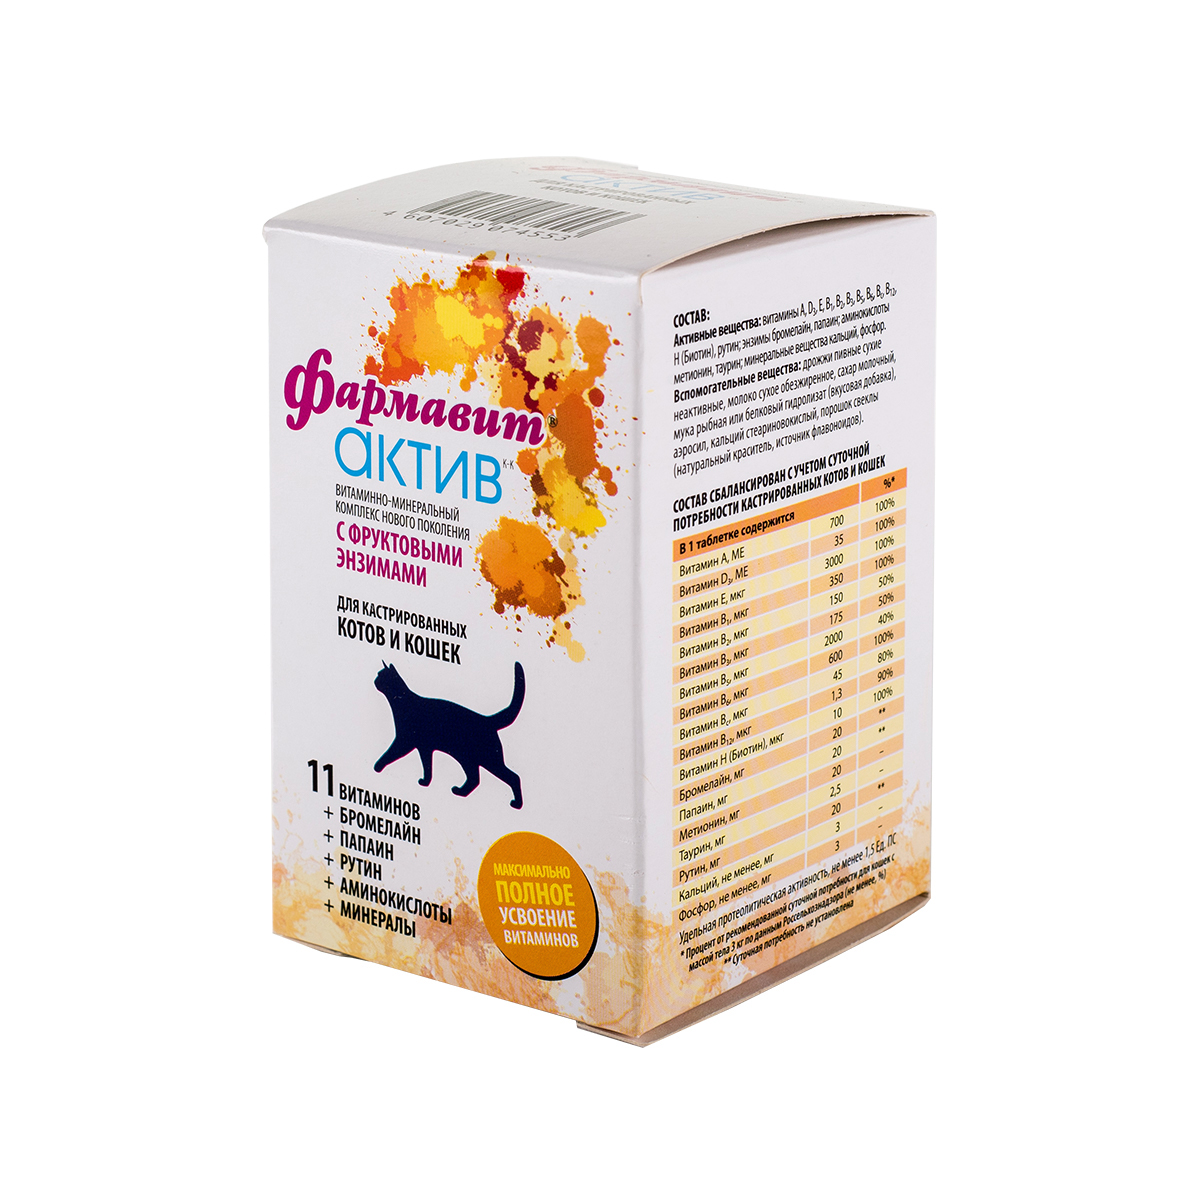 Farmavit Active for knackered male and female cats